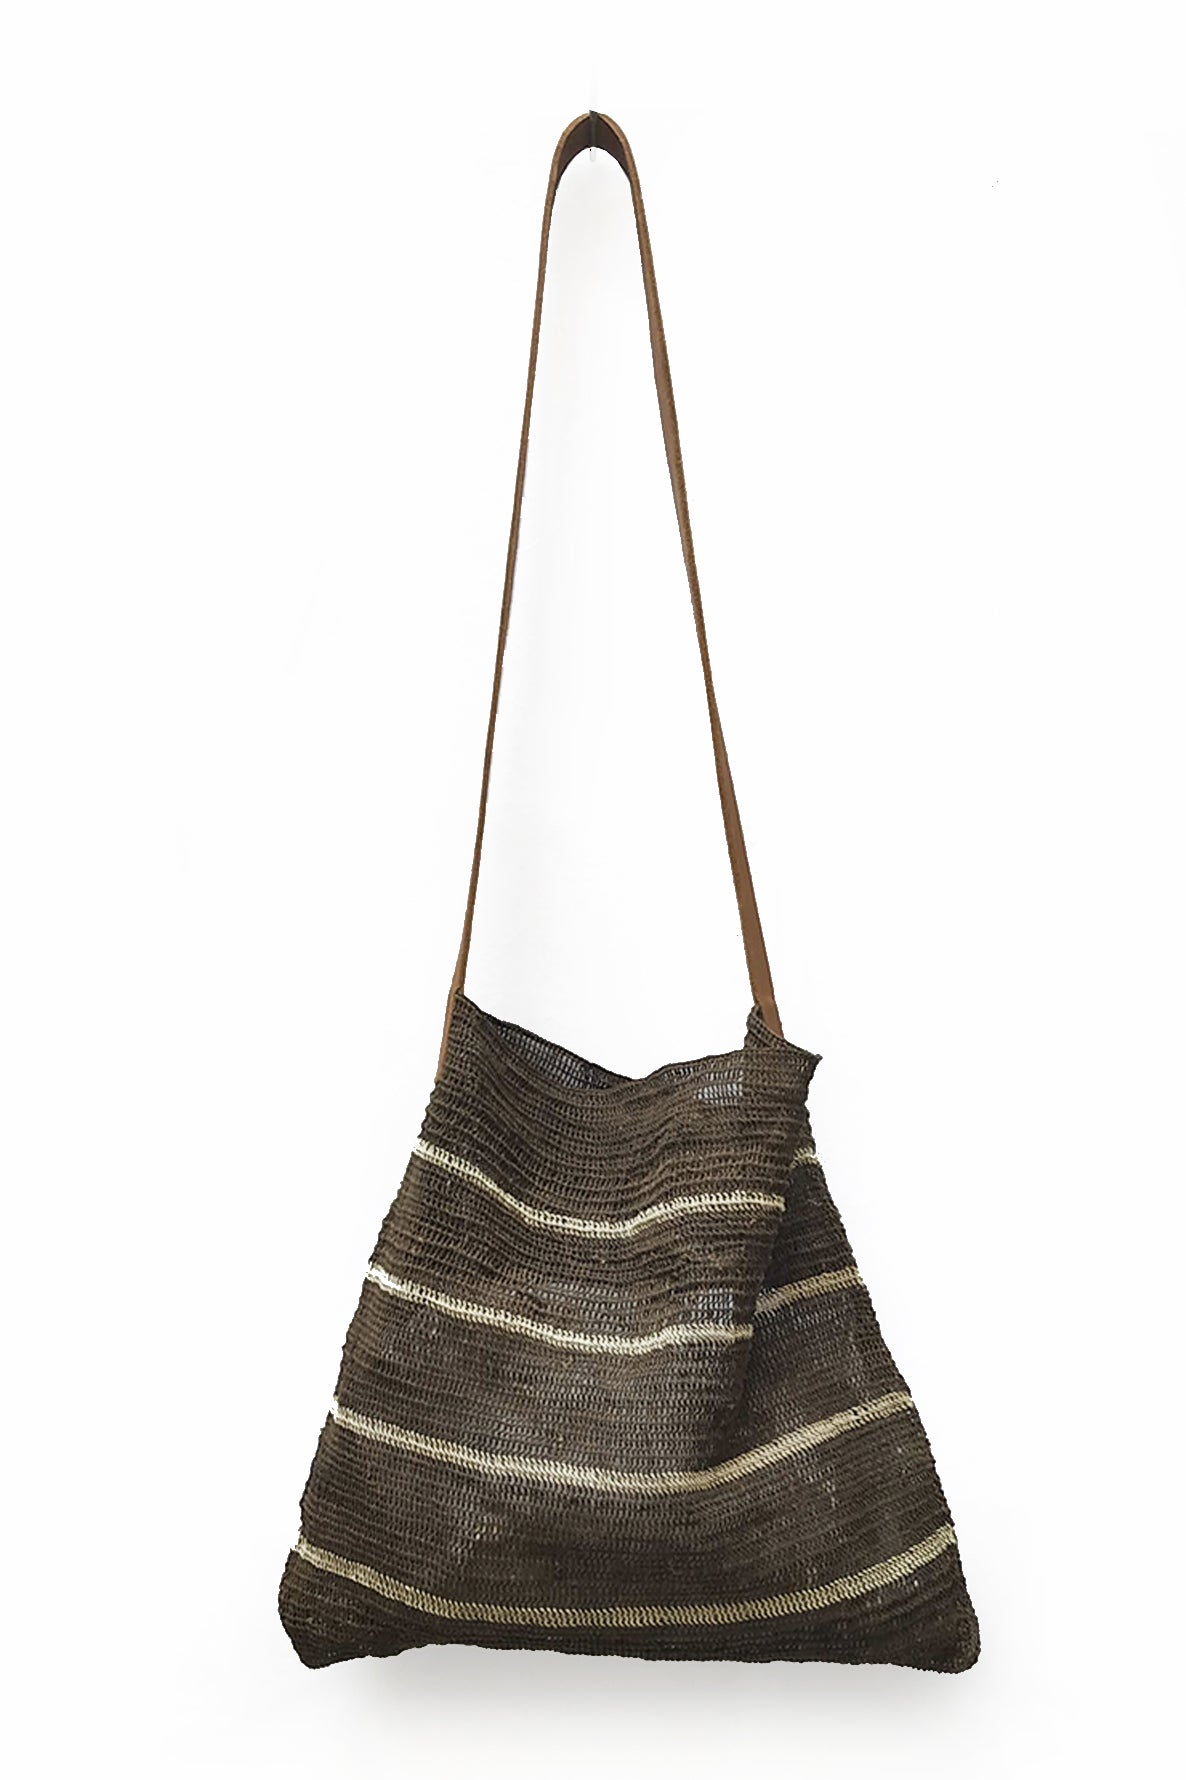 Black Chaguar Purse with Thin White Stripe and Brown Leather Stripes.